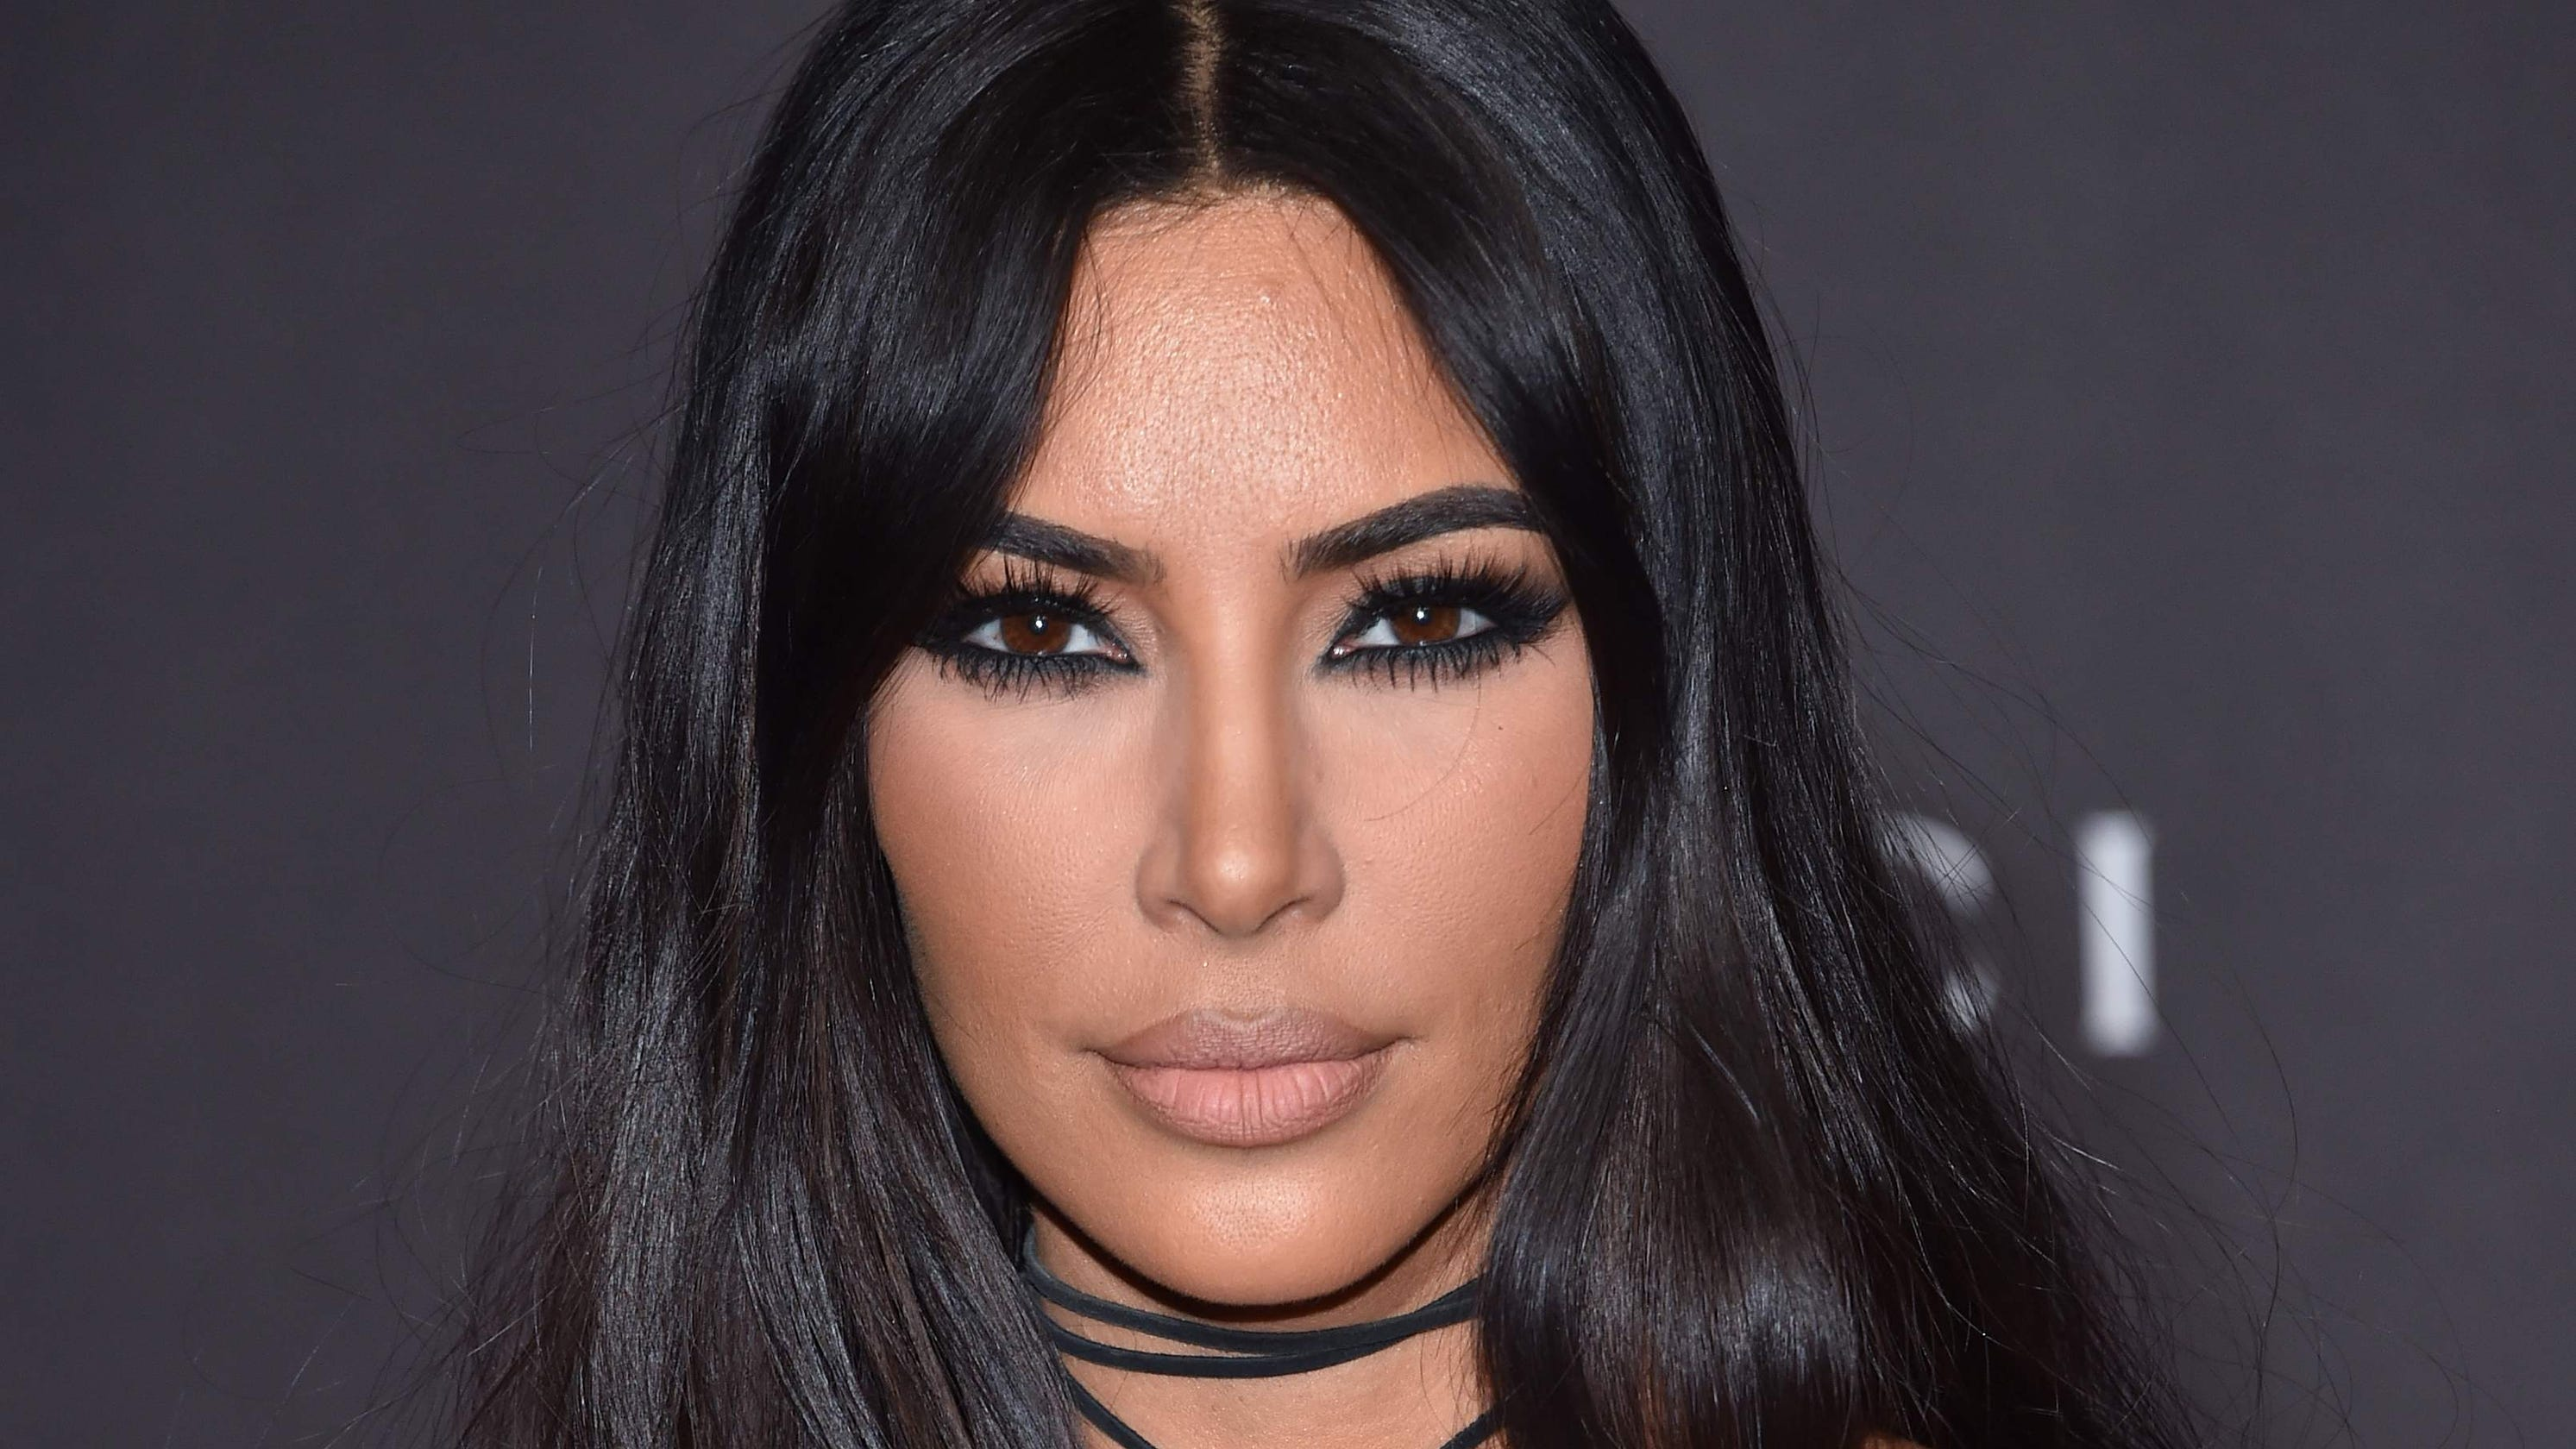 347e183aaf3dc Kim Kardashian's first marriage revelation: 'I got married on ecstasy'